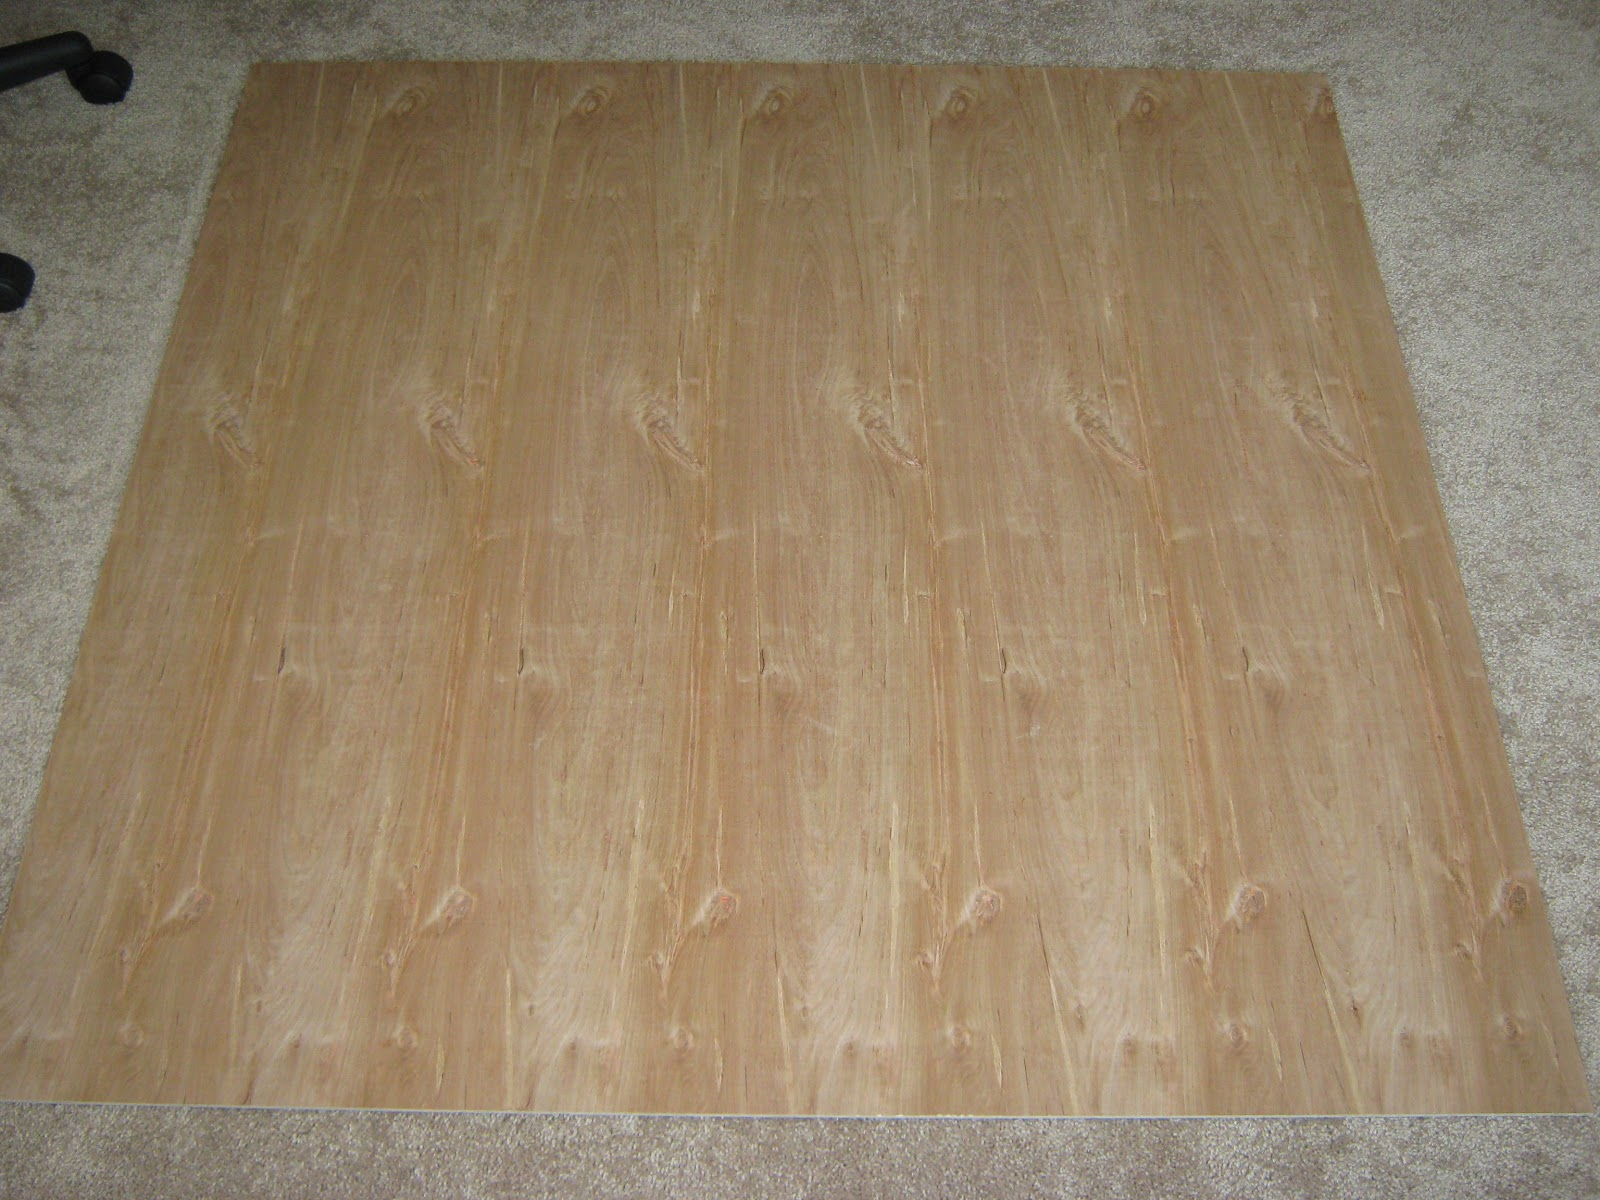 FakeIt Frugal DIY Wooden Office Chair Mat - Computer chair mat for carpet